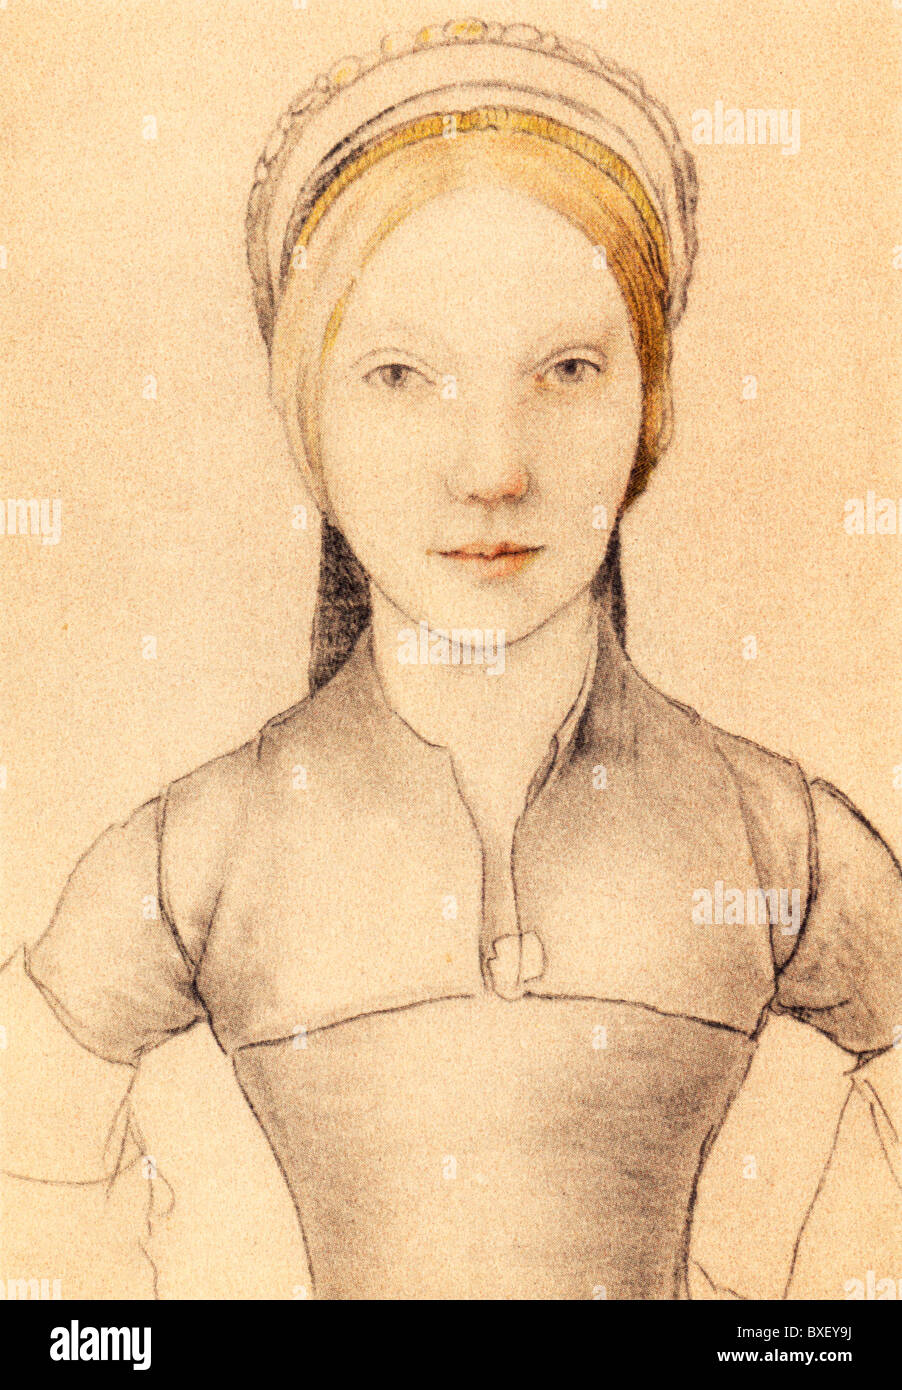 Sketch by Hans Holbein the Younger; Portrait of Jane Boleyn, Lady Parker, sister in law to Anne Boleyn; Colour Illustration; - Stock Image